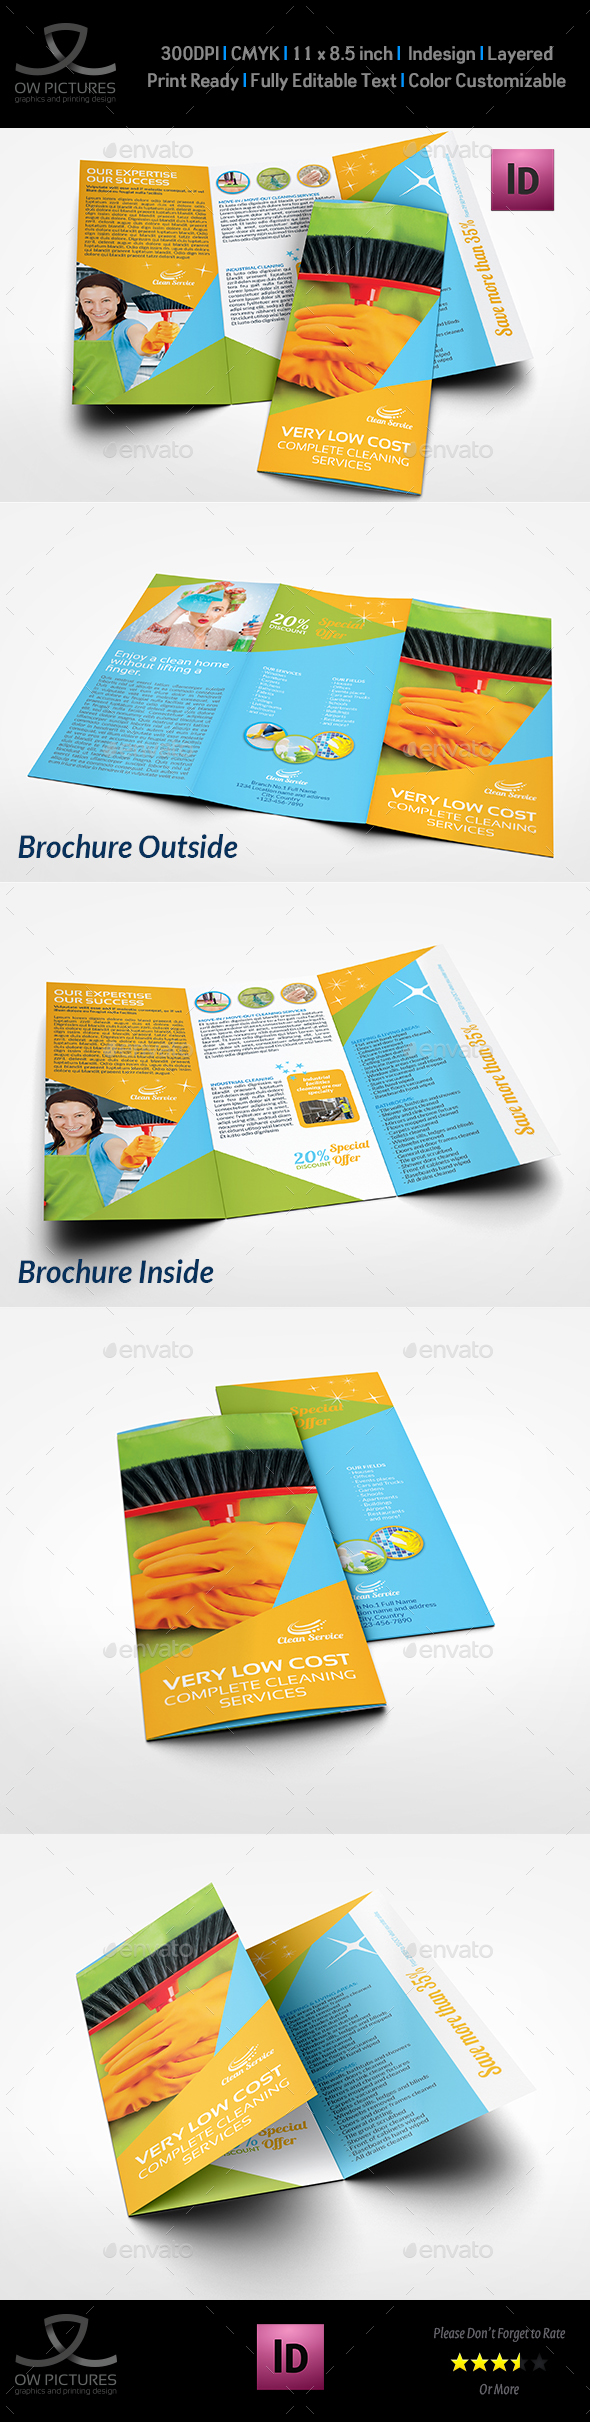 Cleaning Services Tri-Fold Brochure Template Vol.4 - Corporate Brochures